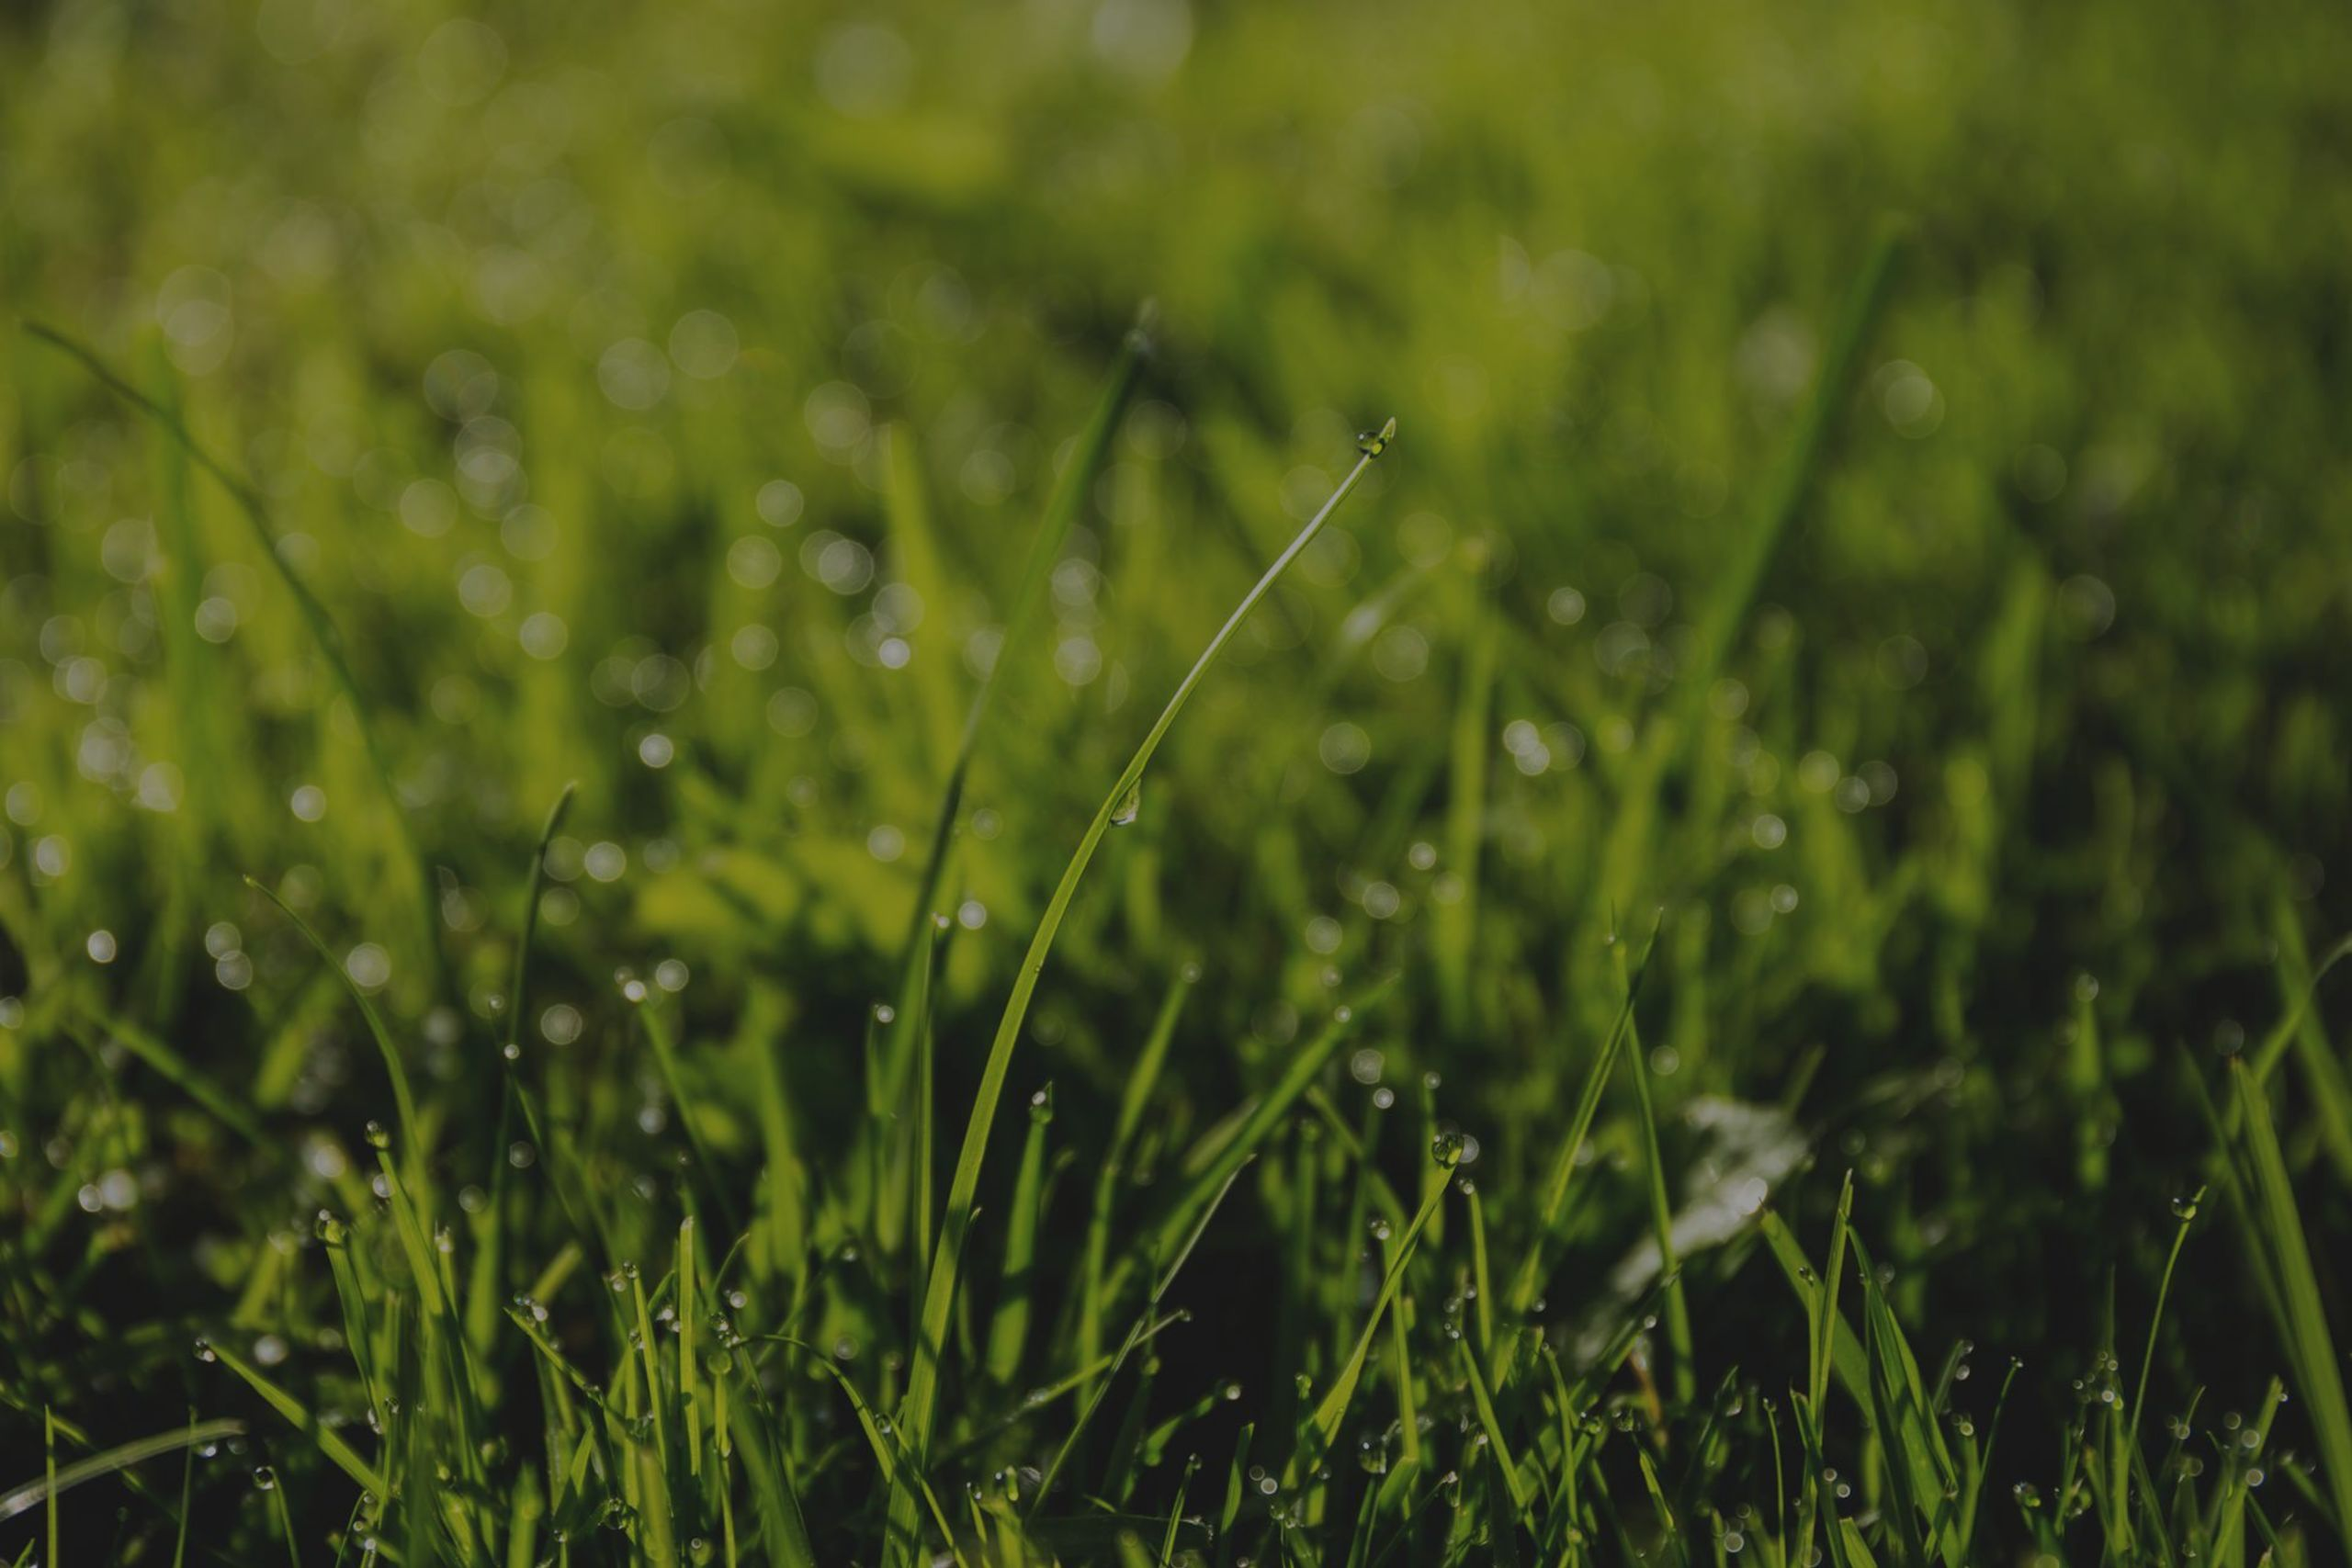 Taking Care of Your Albuquerque Lawn Without Wasting Resources